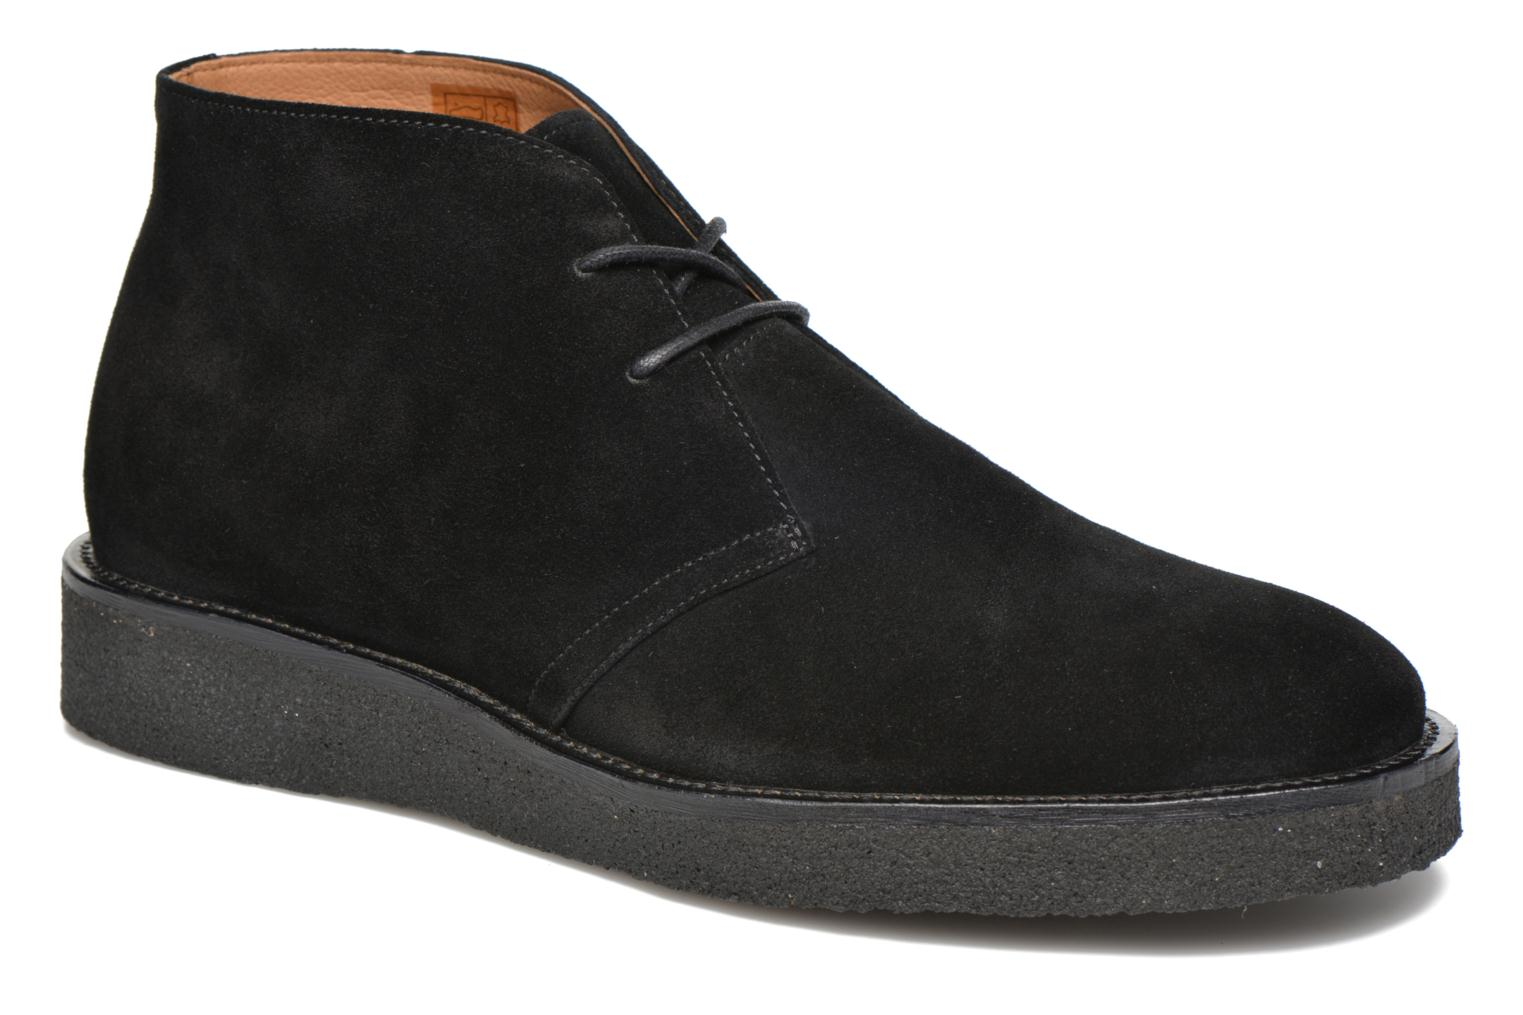 Leoh 91 Black Suede Ceremony Opening OAvq5A